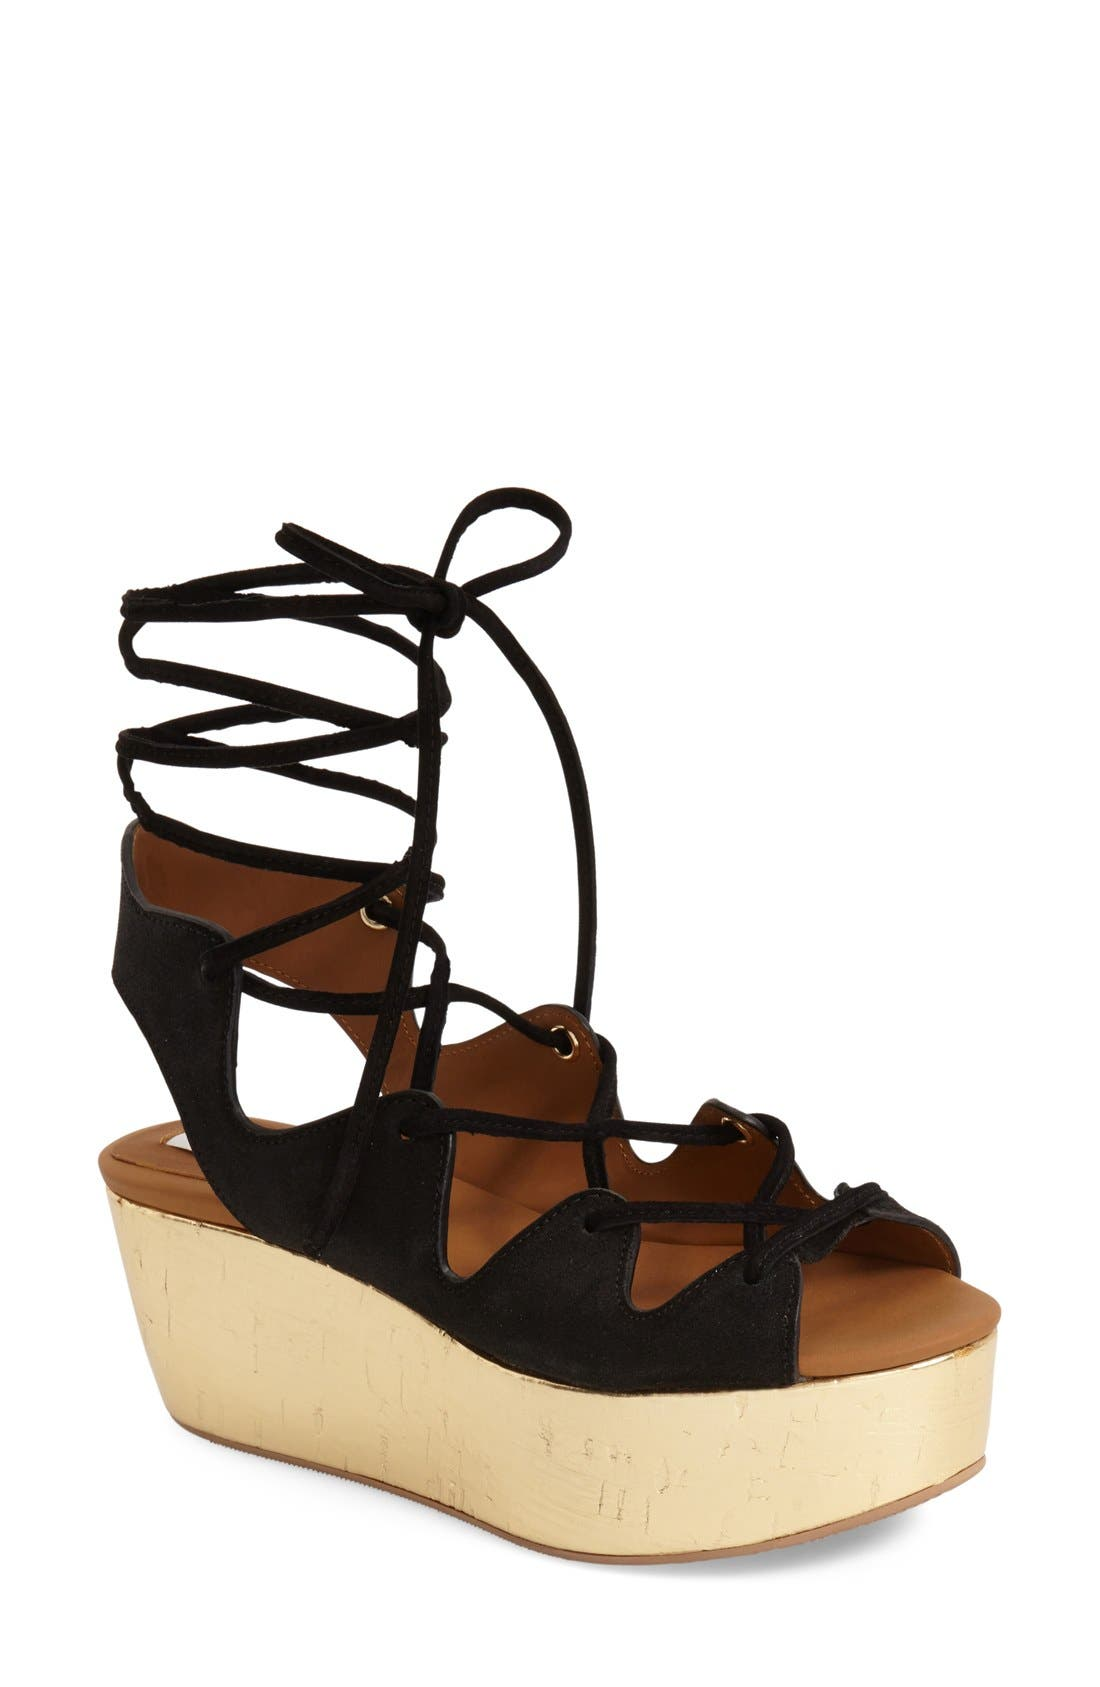 'Liana' Platform Wedge Sandal,                         Main,                         color, 001